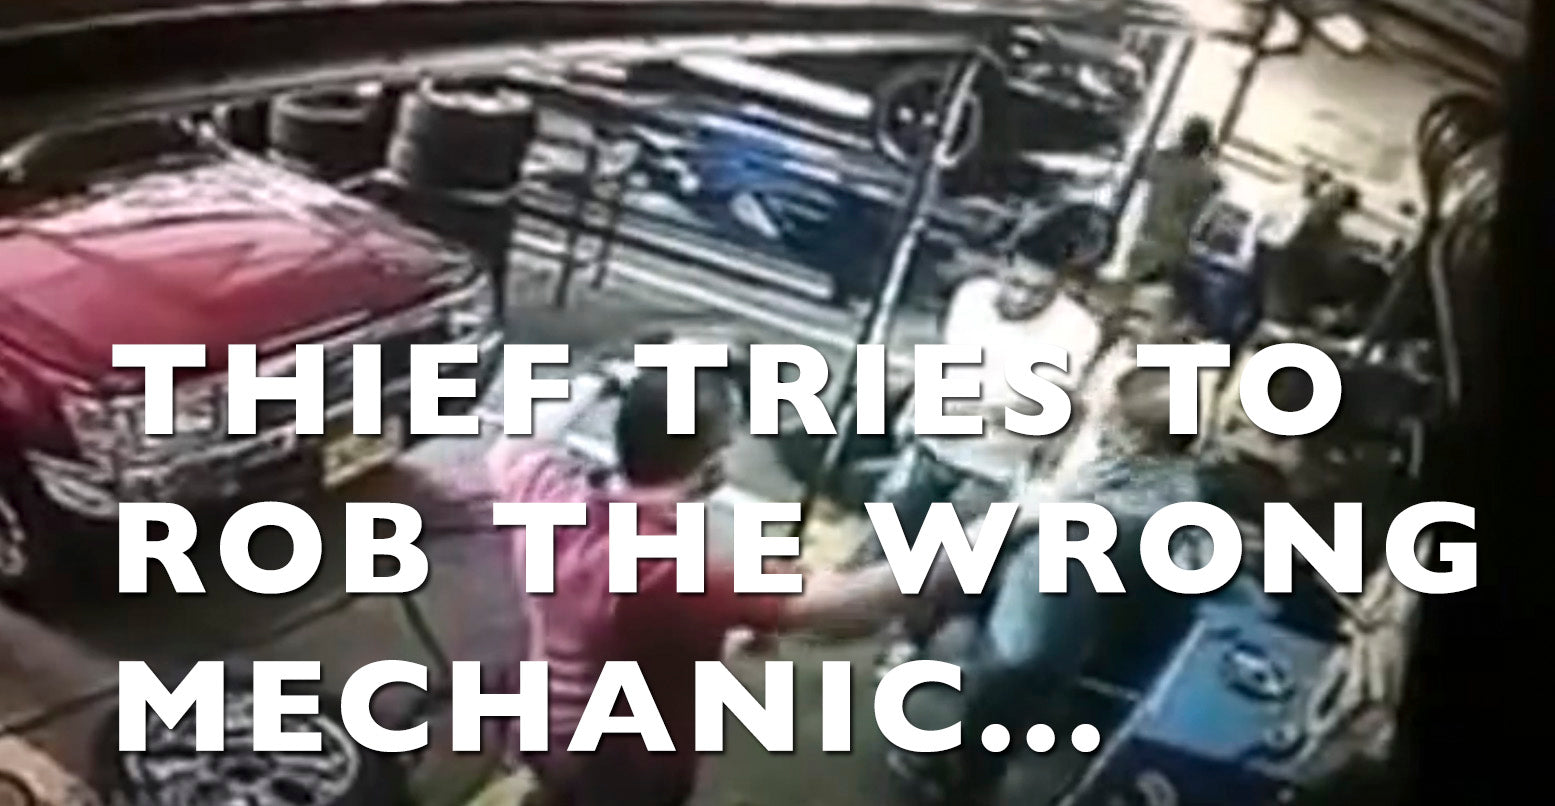 VIDEO: Thief Attempts to Rob the WRONG Mechanic...